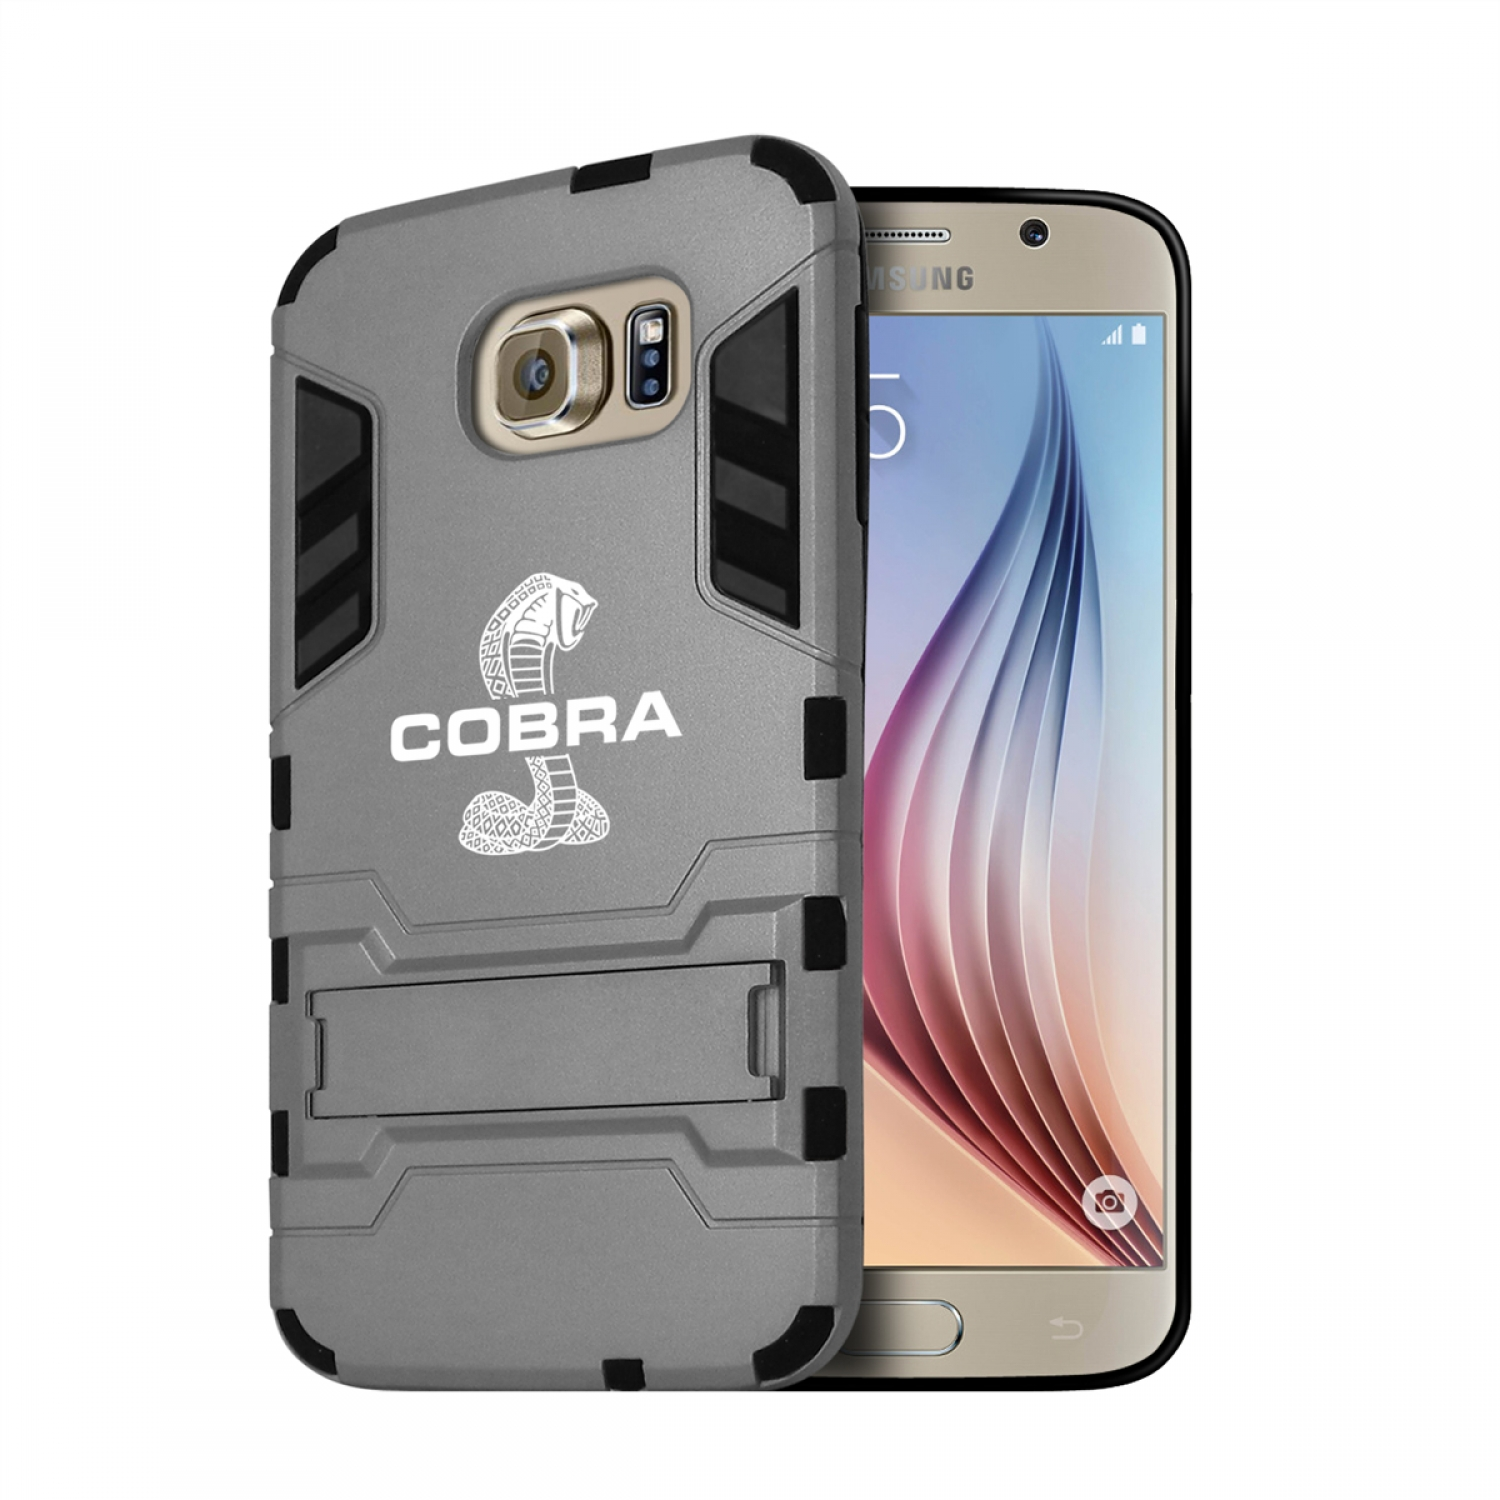 Ford Mustang Cobra Samsung Galaxy S6 Shockproof TPU ABS Hybrid Gray Phone Case